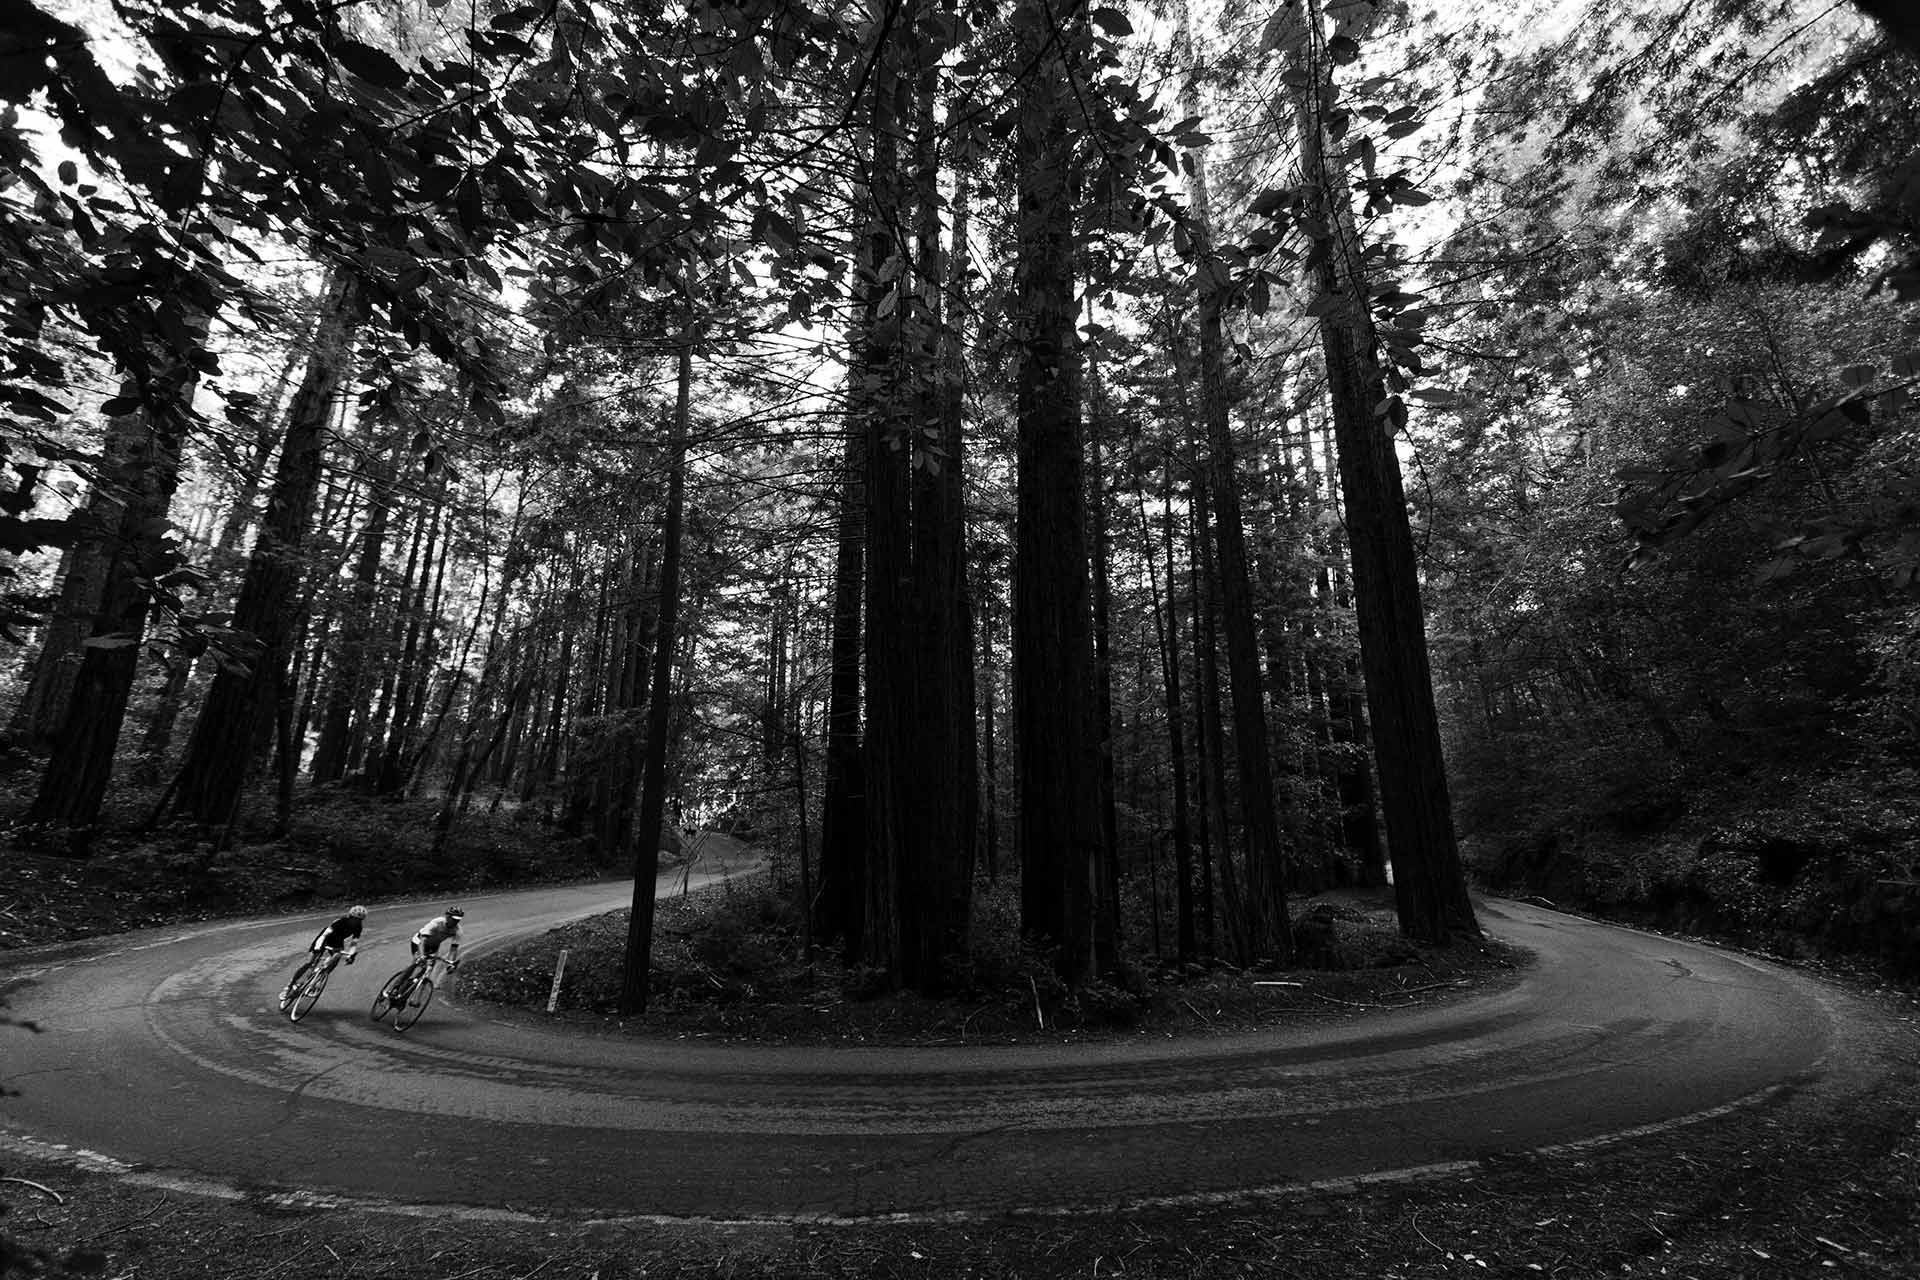 Bikers in a forest